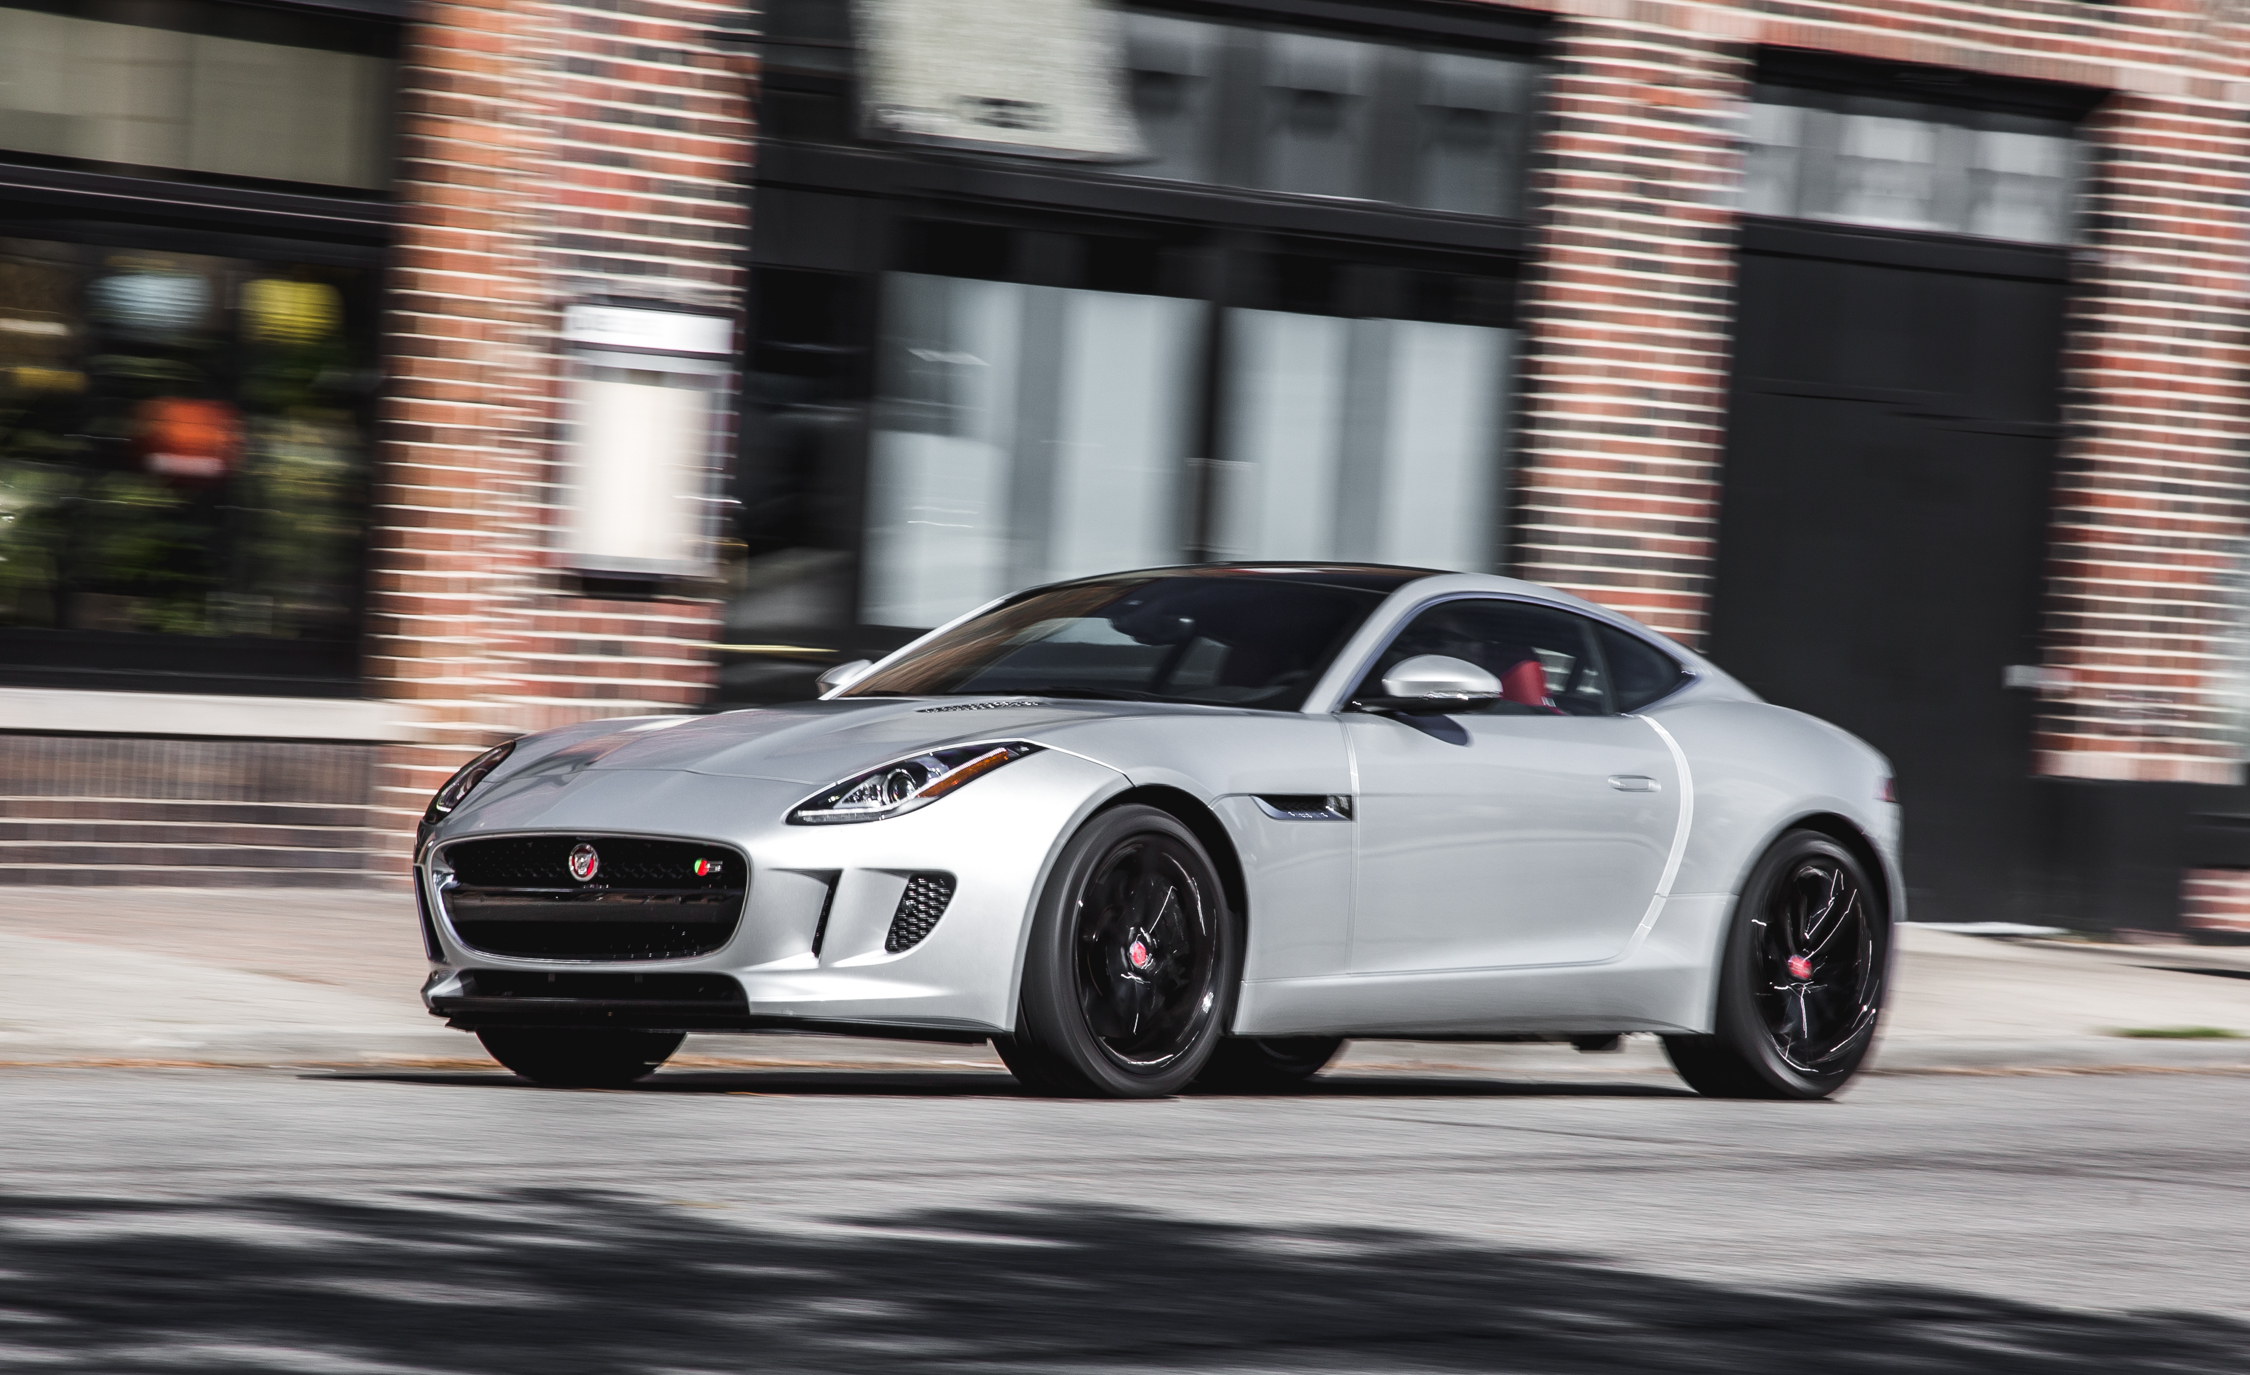 2016 Jaguar F Type V 6 S Coupe (Photo 13 of 23)